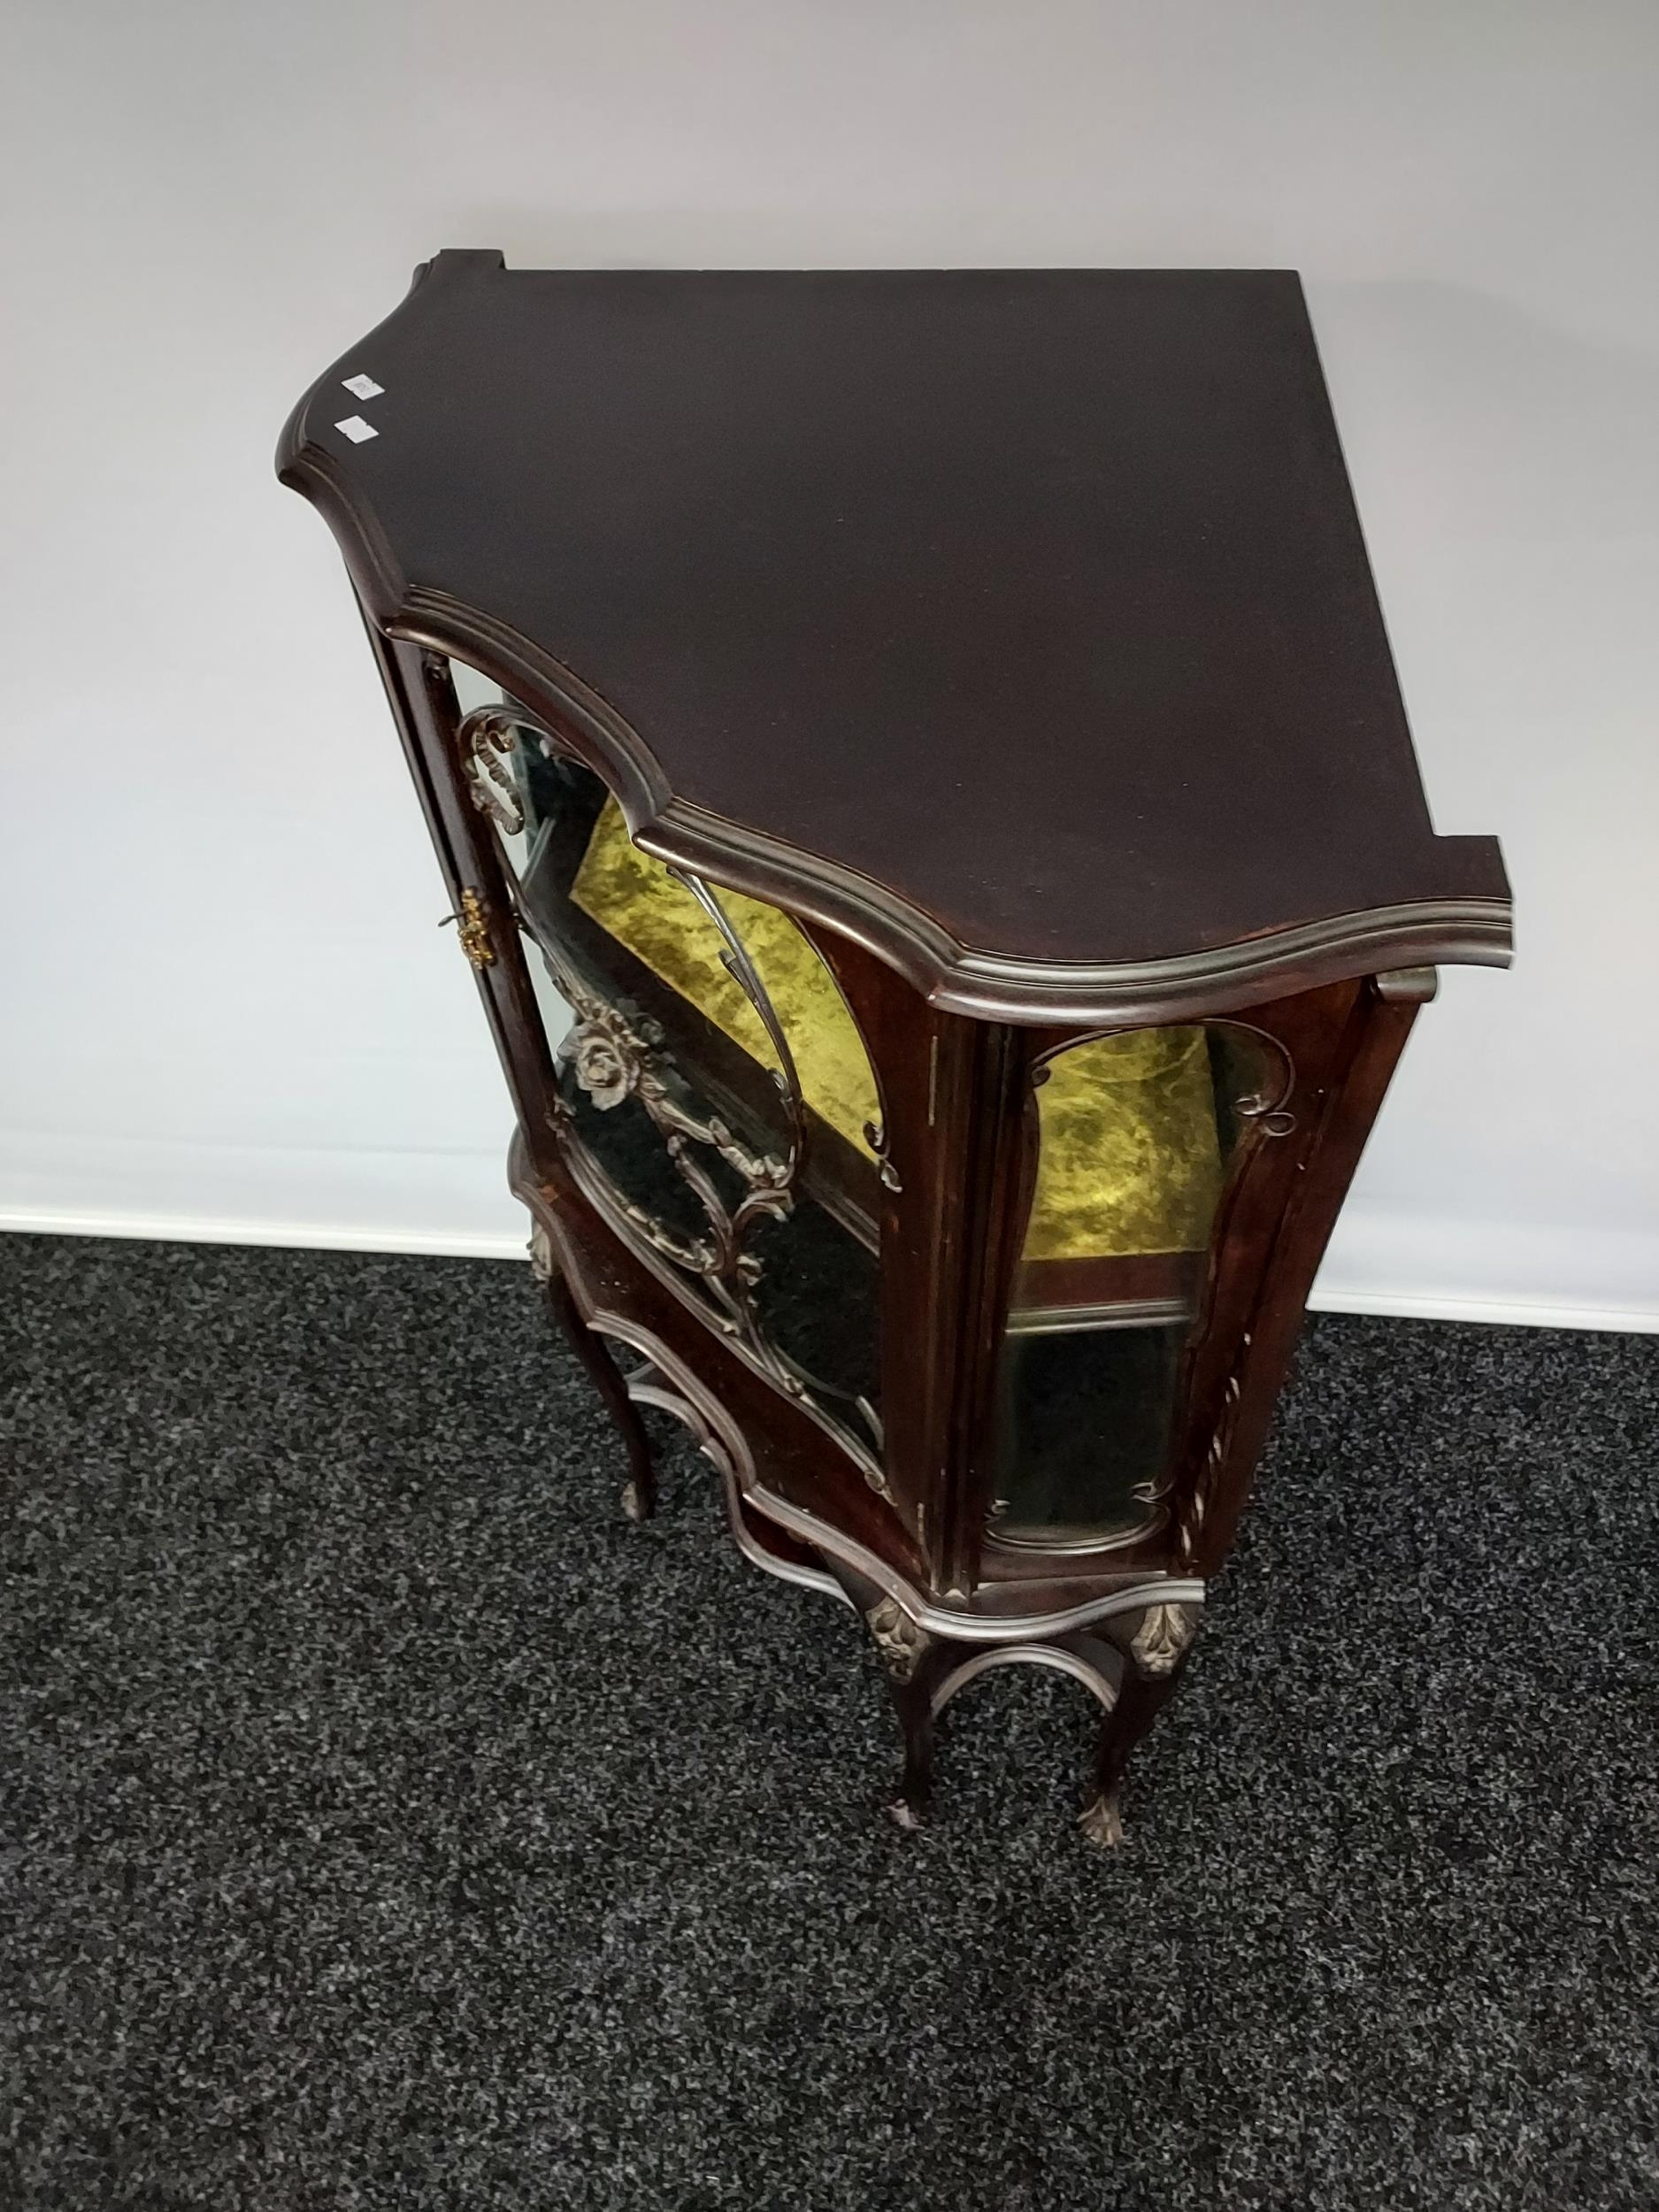 An antique Chippendale style ornate corner display cabinet. Comes with a key. [119x50x50cm] - Image 4 of 5